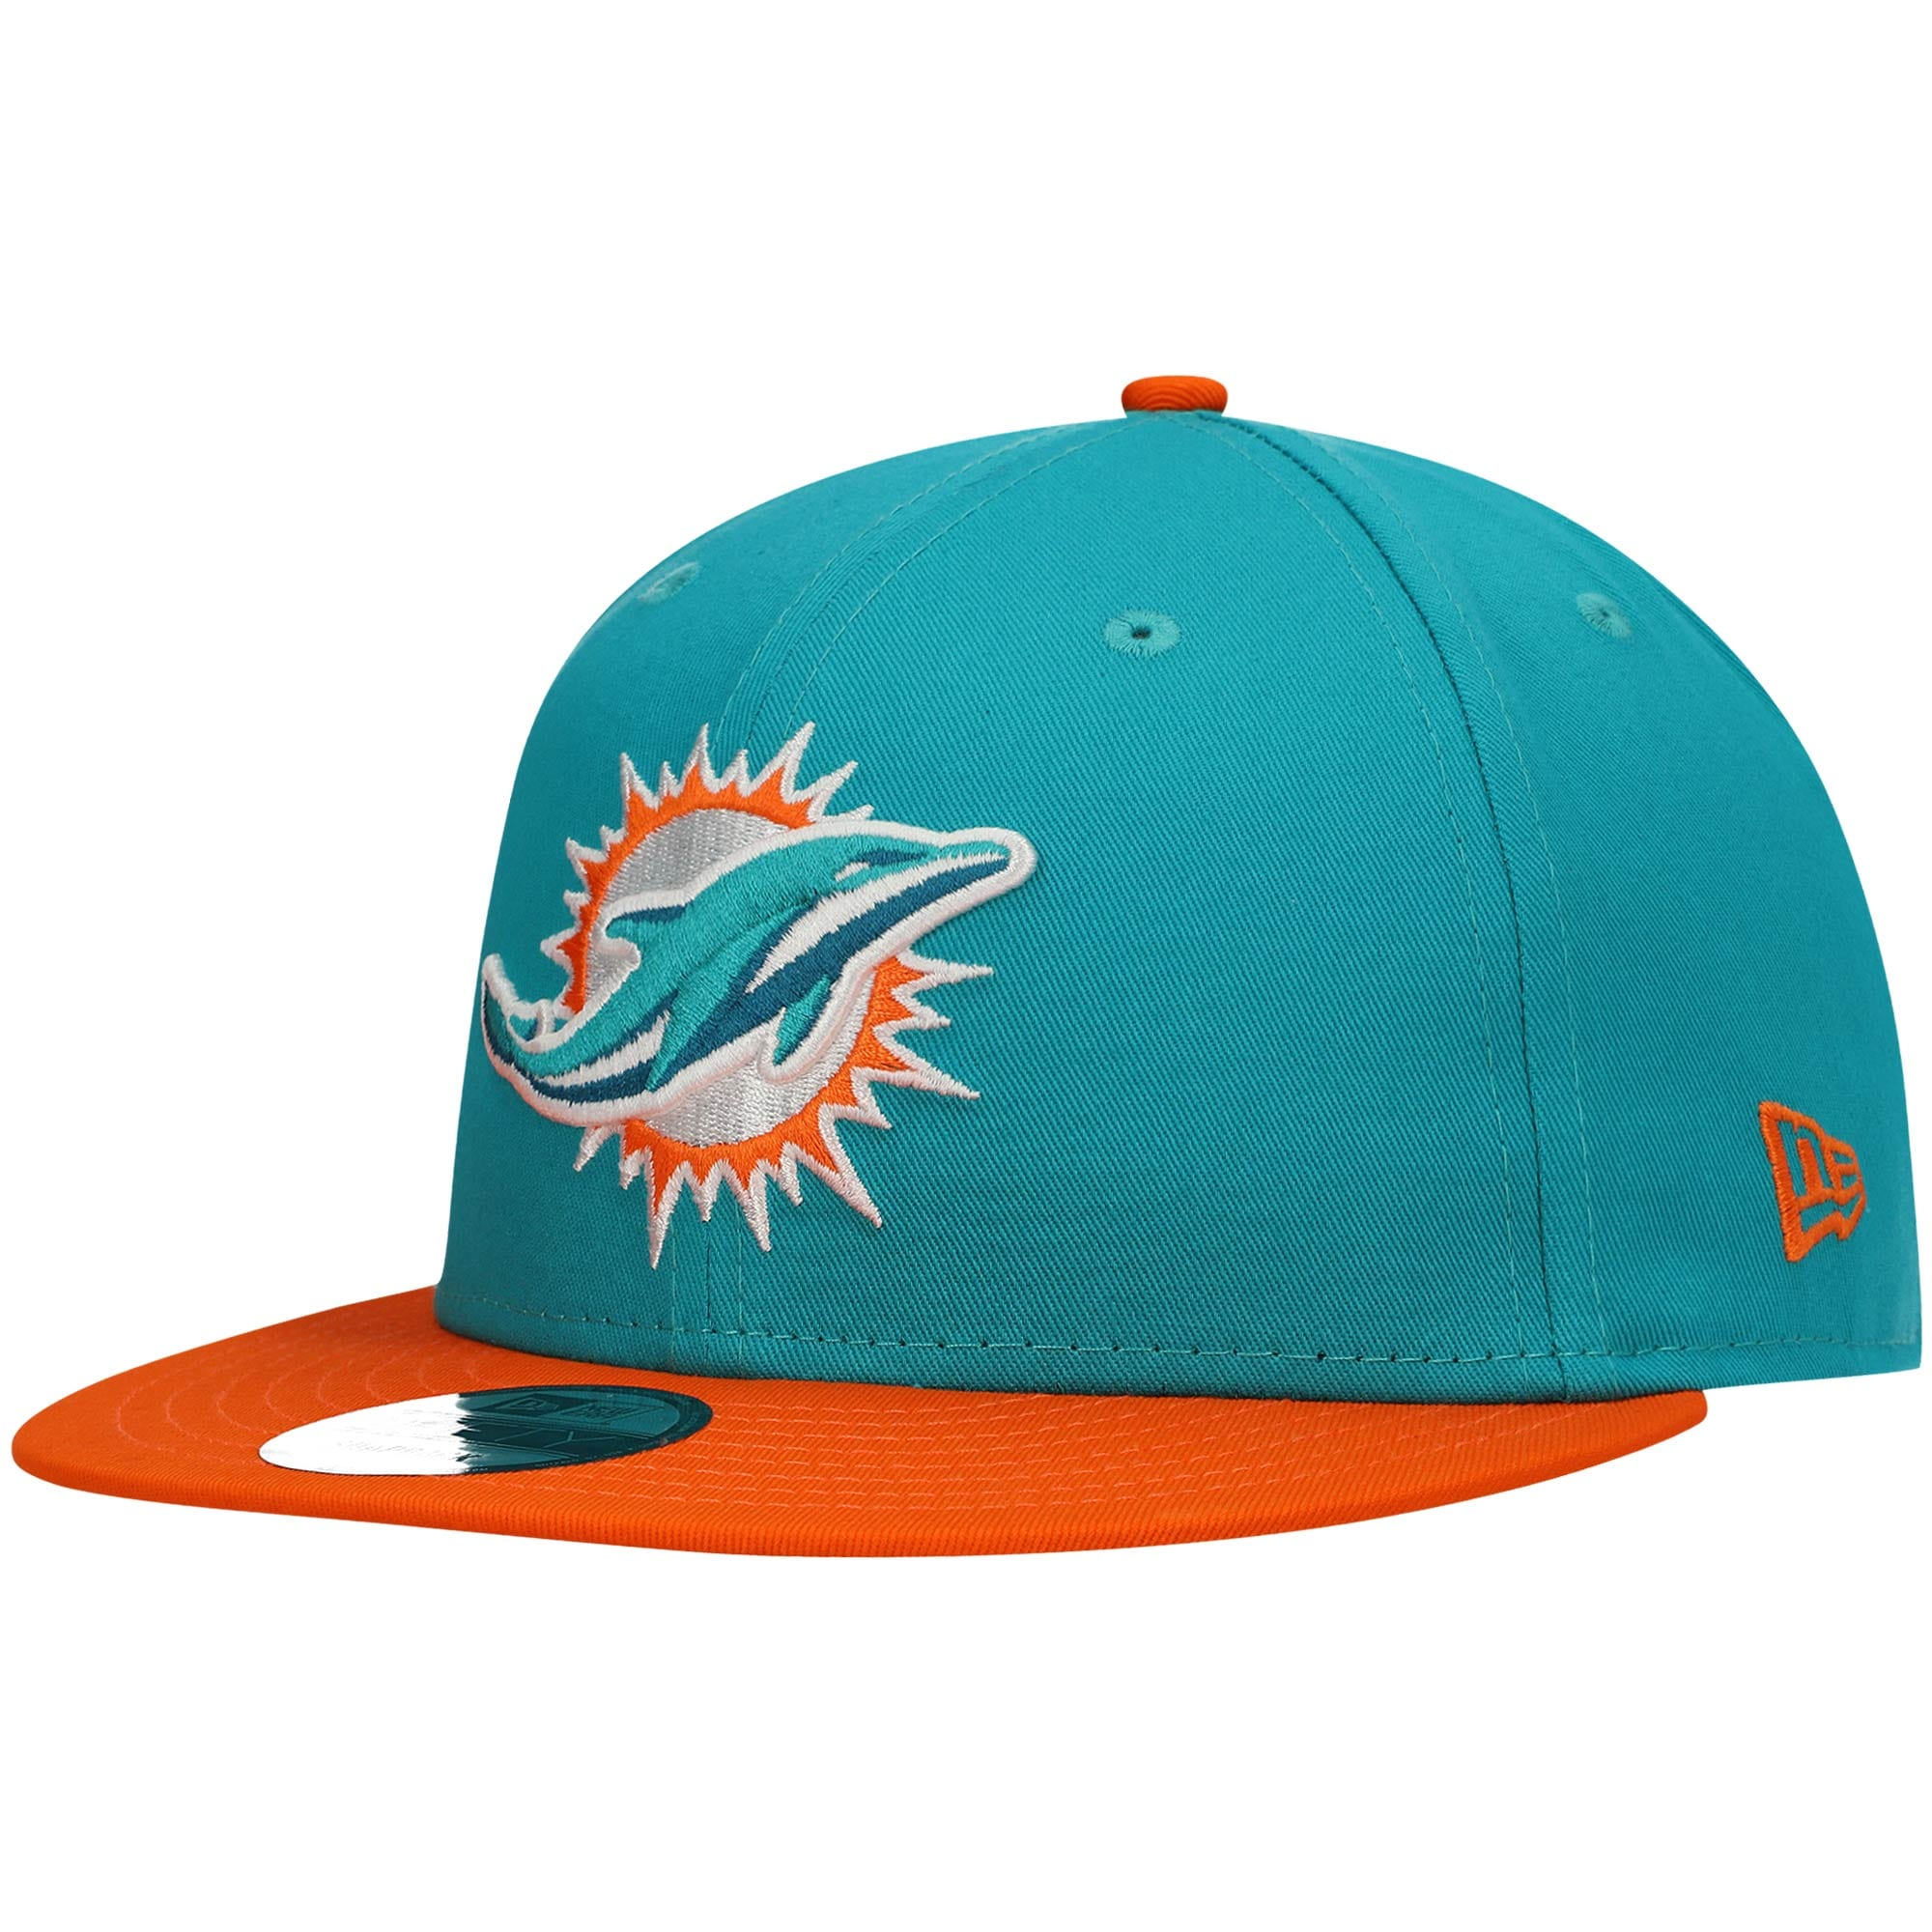 Miami Dolphins New Era Baycik 9FIFTY Snapback Hat - Aqua/Orange